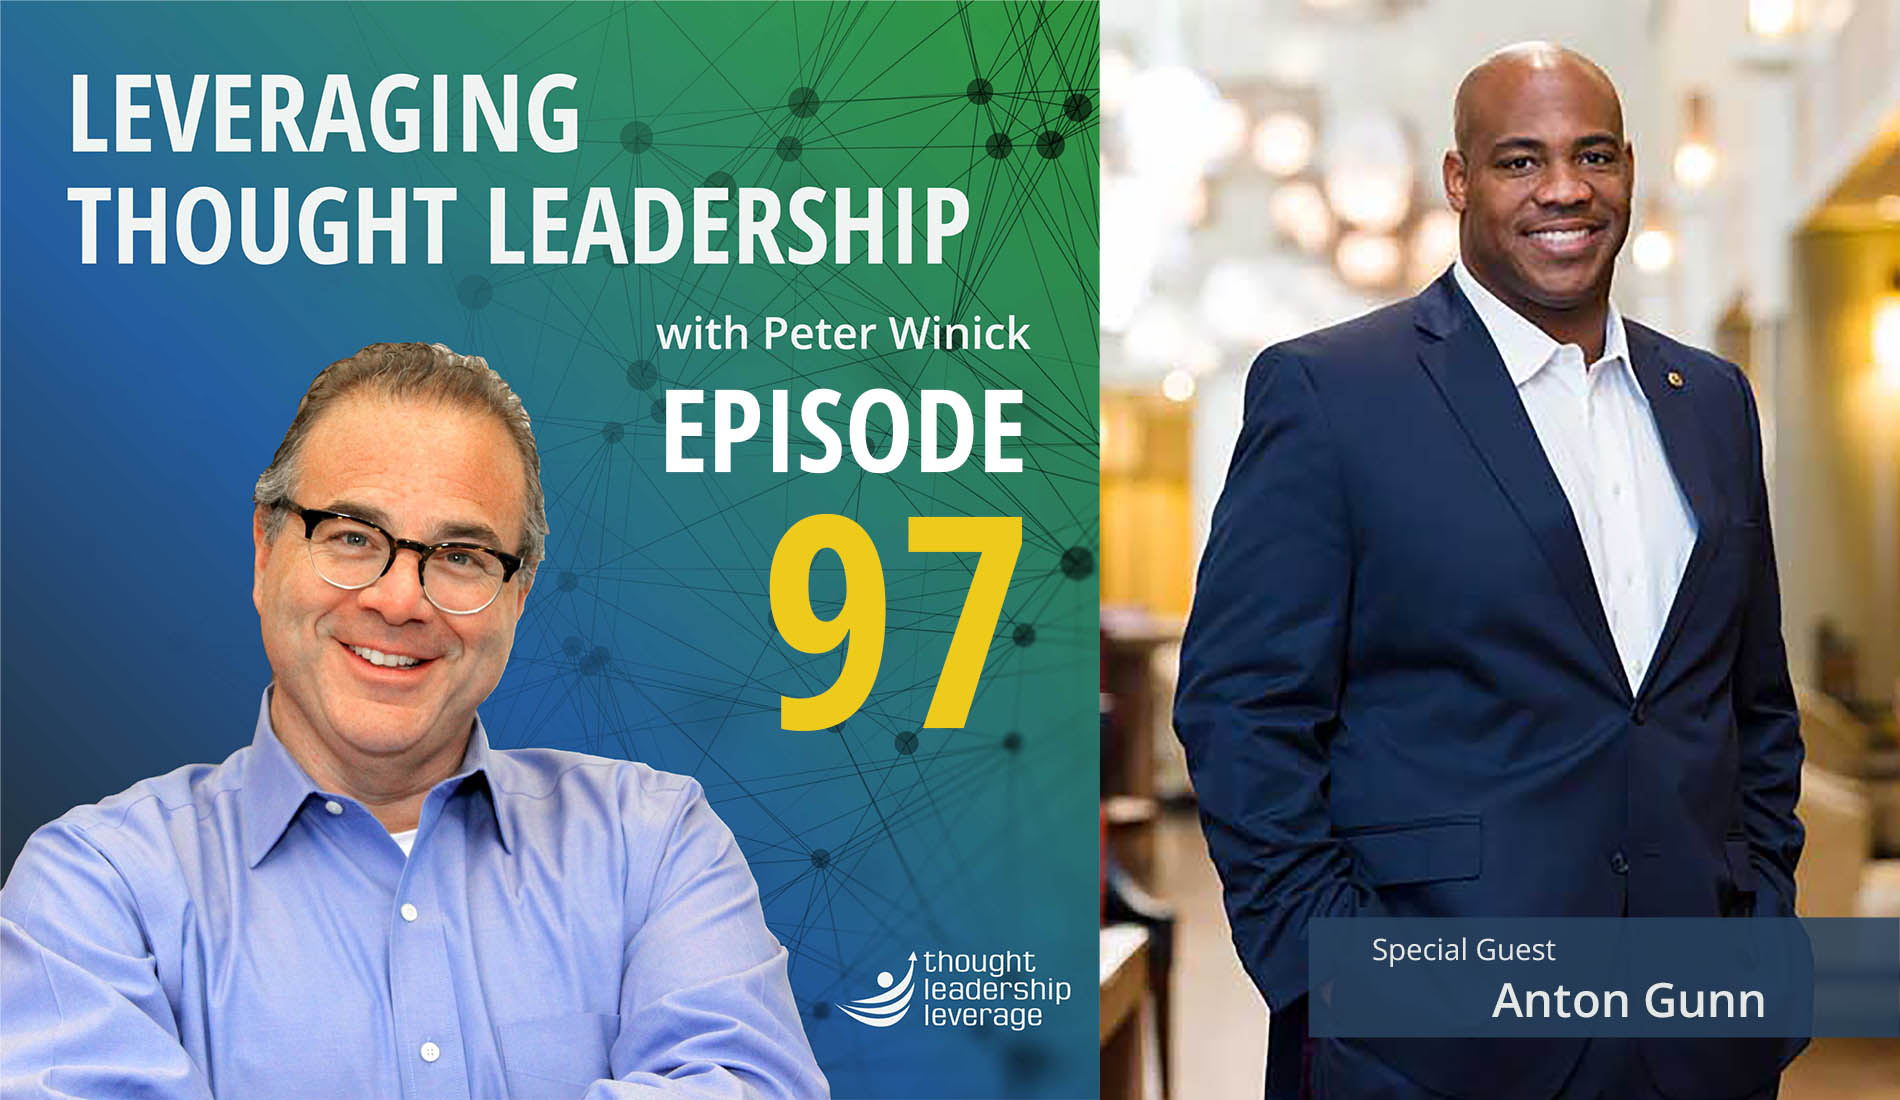 Leveraging Thought Leadership Episode 97 - Peter Winick speaks with Anton Gunn